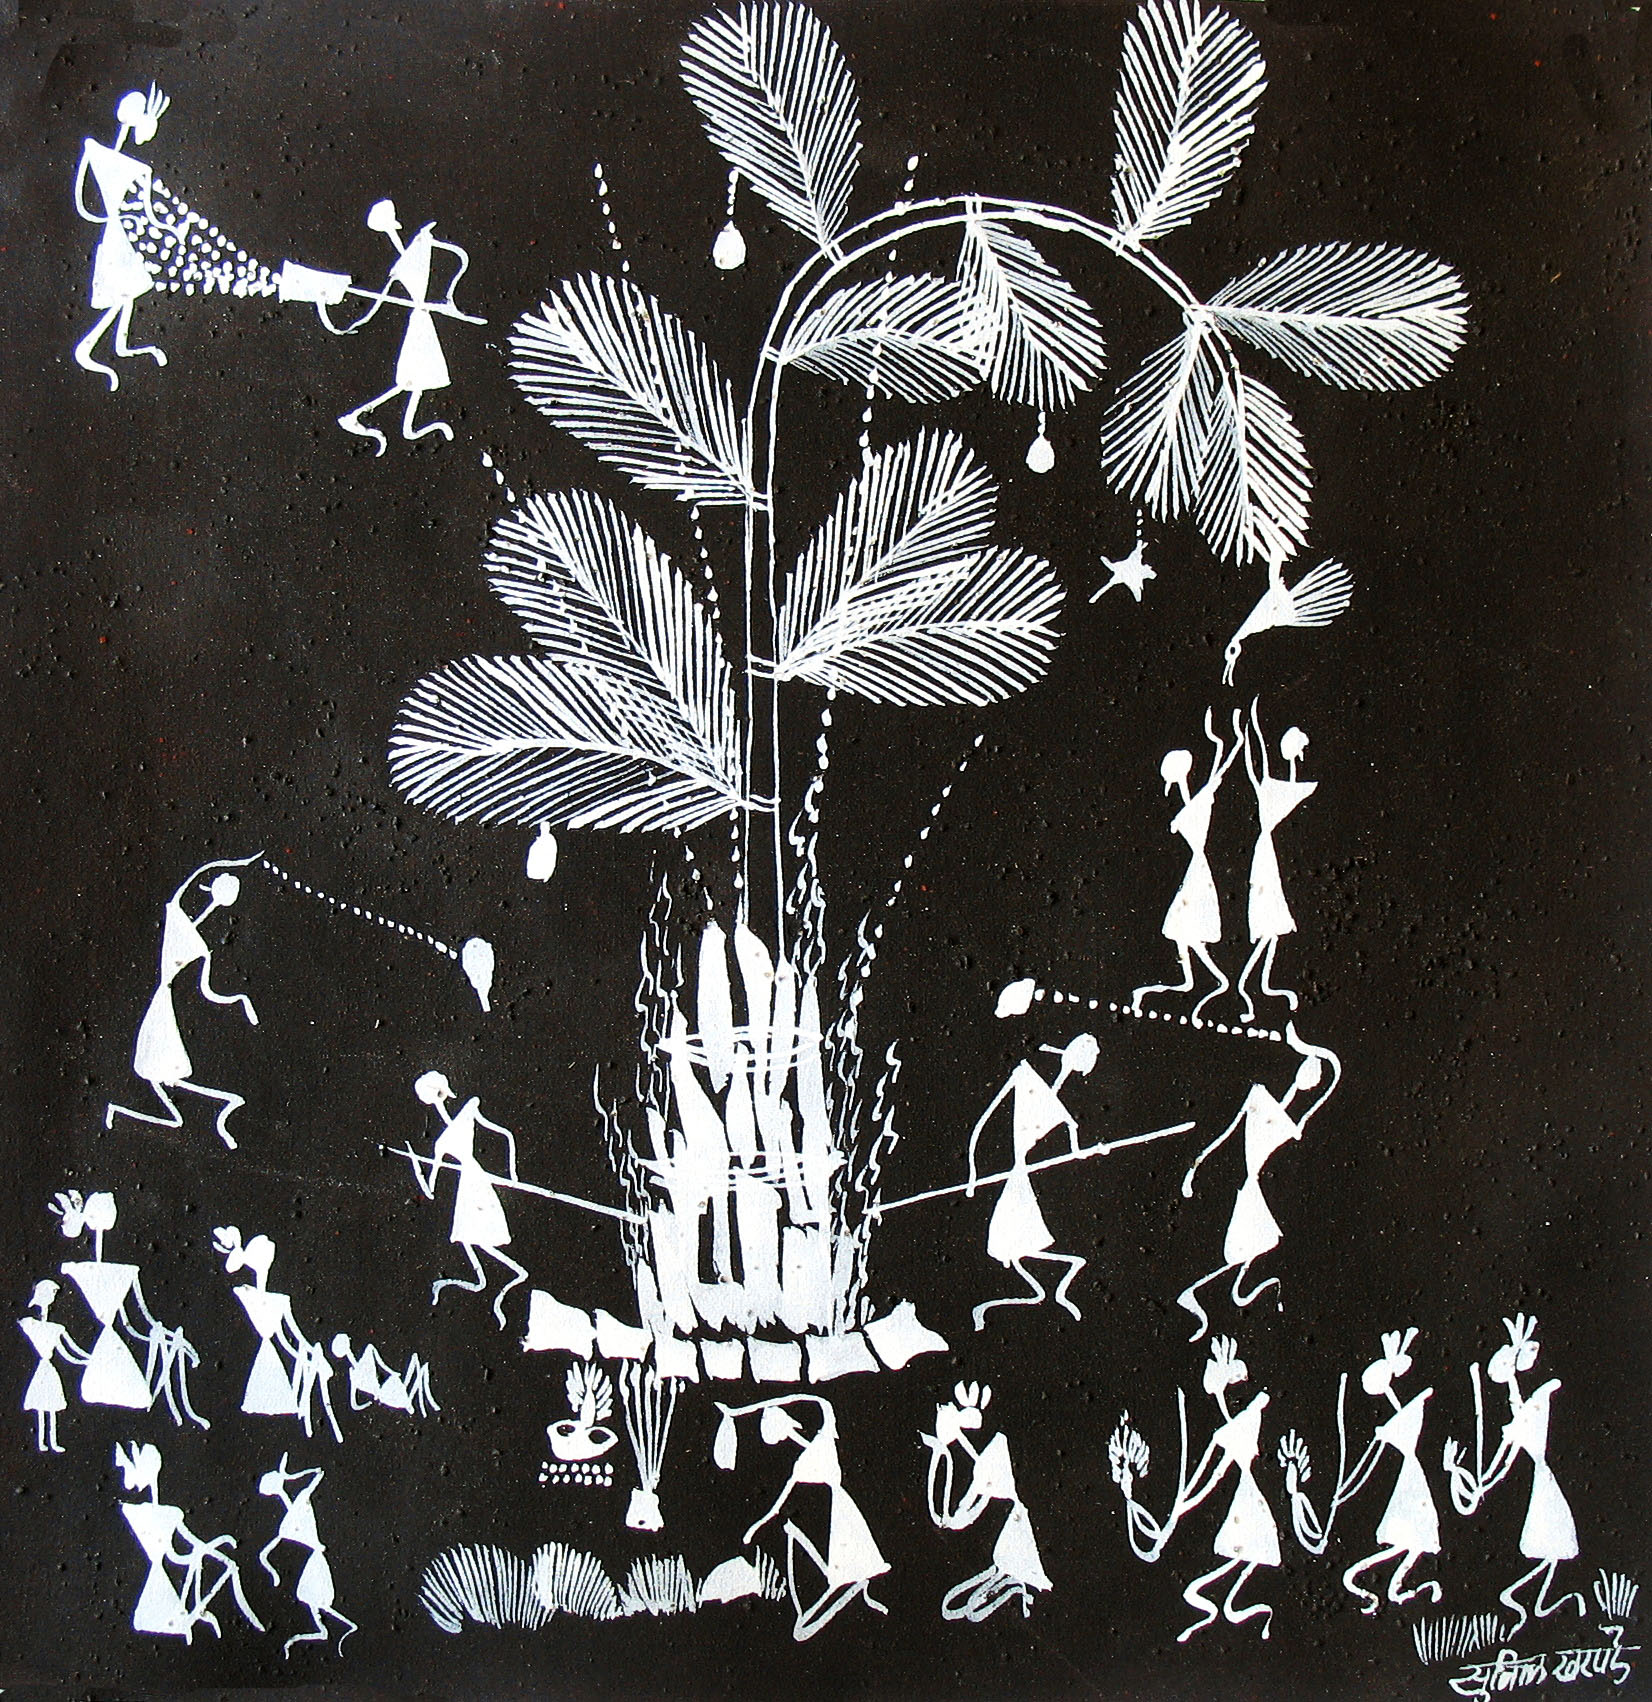 warli painting black background